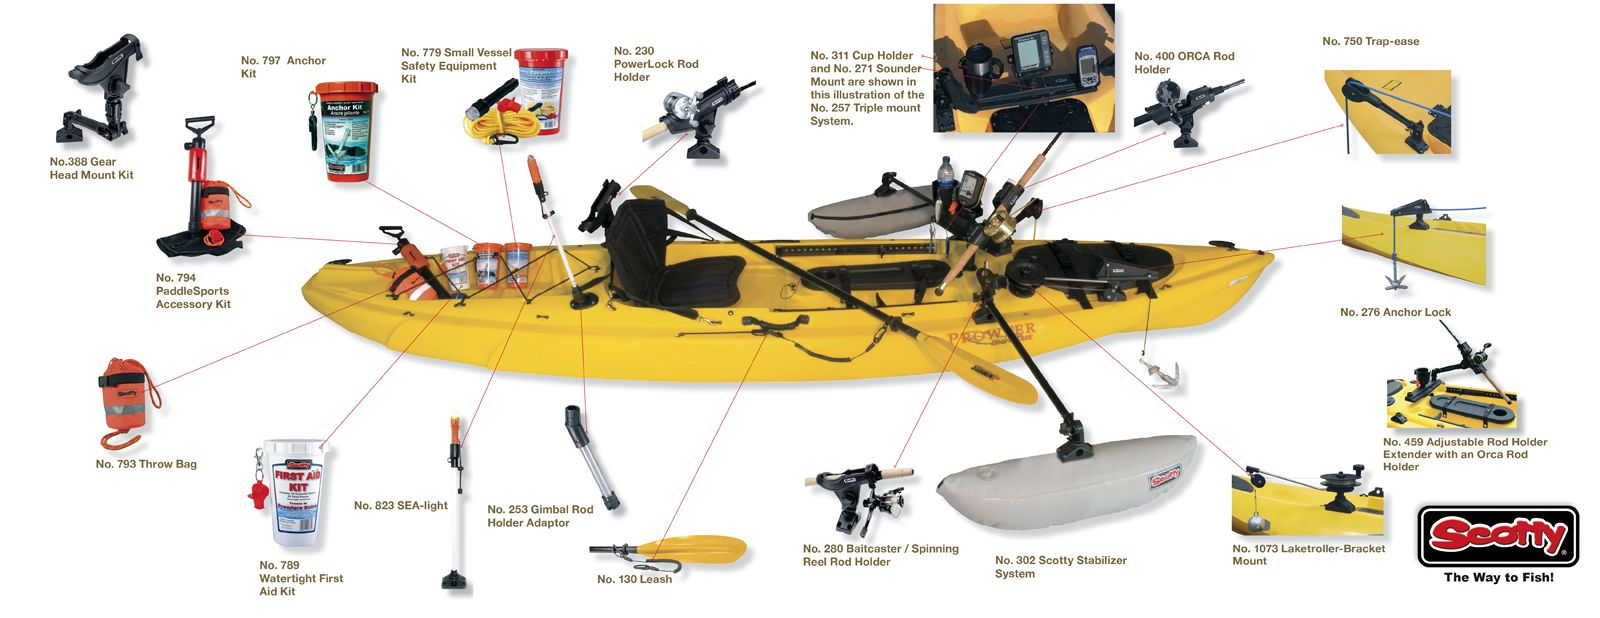 Kayak equipment google search kayak news for you for Best fishing kayak accessories